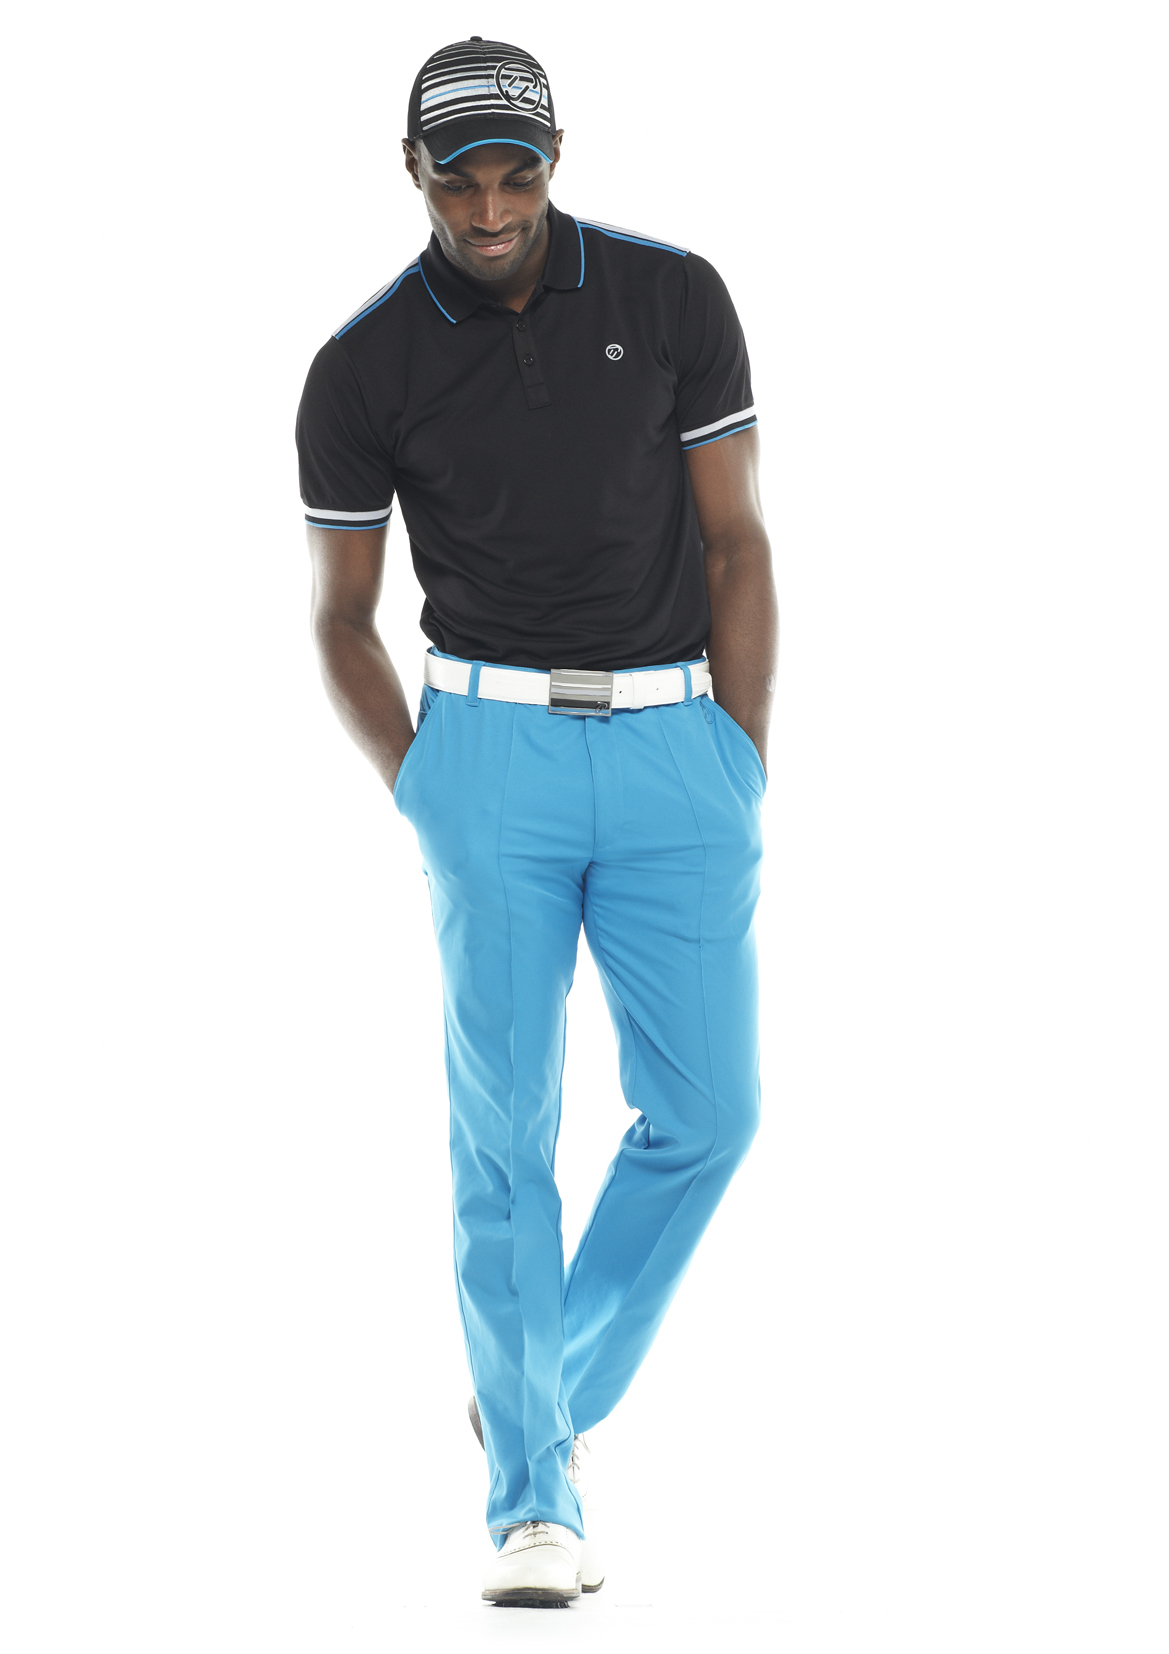 ijp golf clothing catalogue model